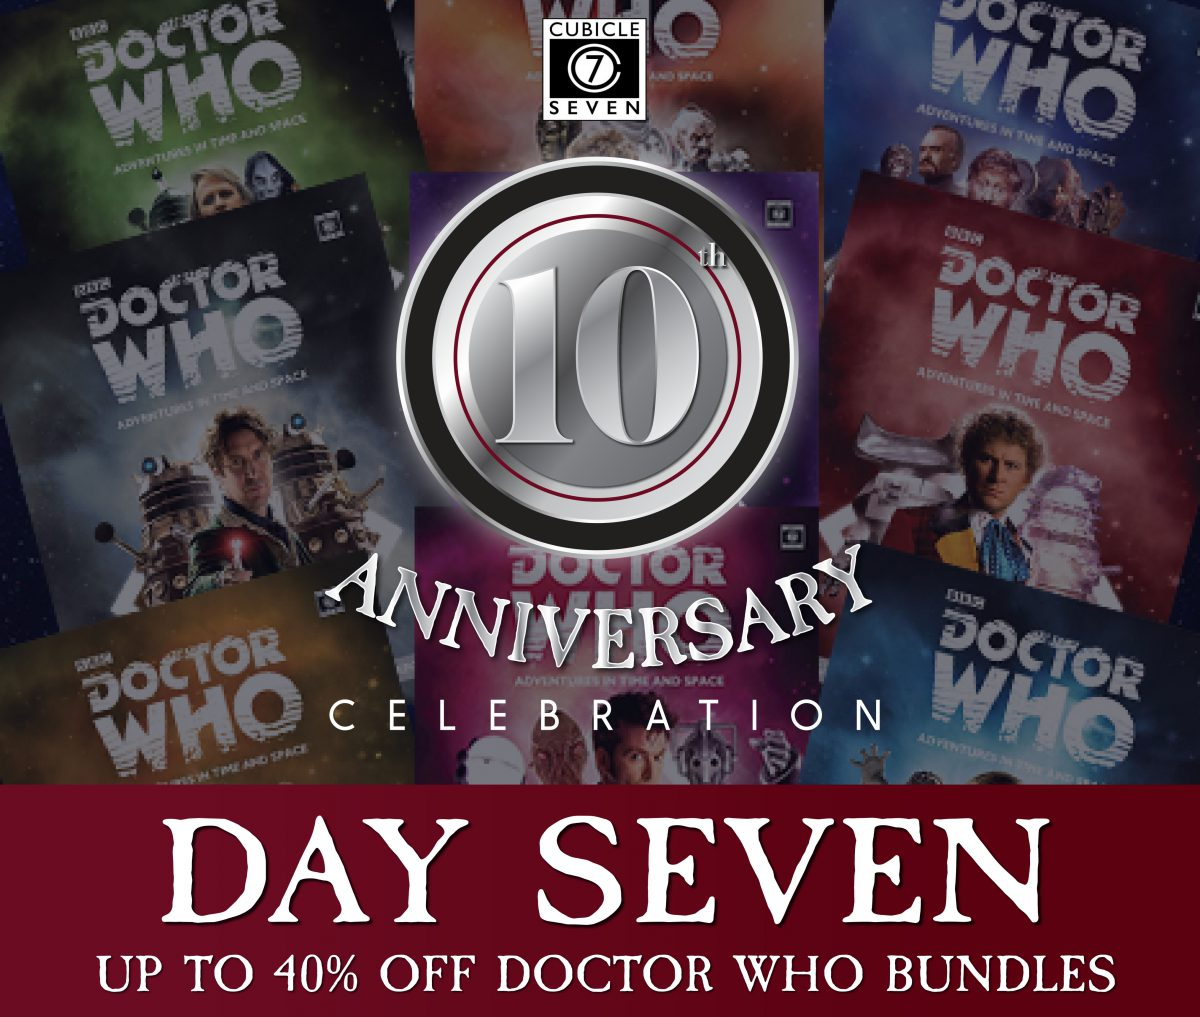 Doctor Who Bundles